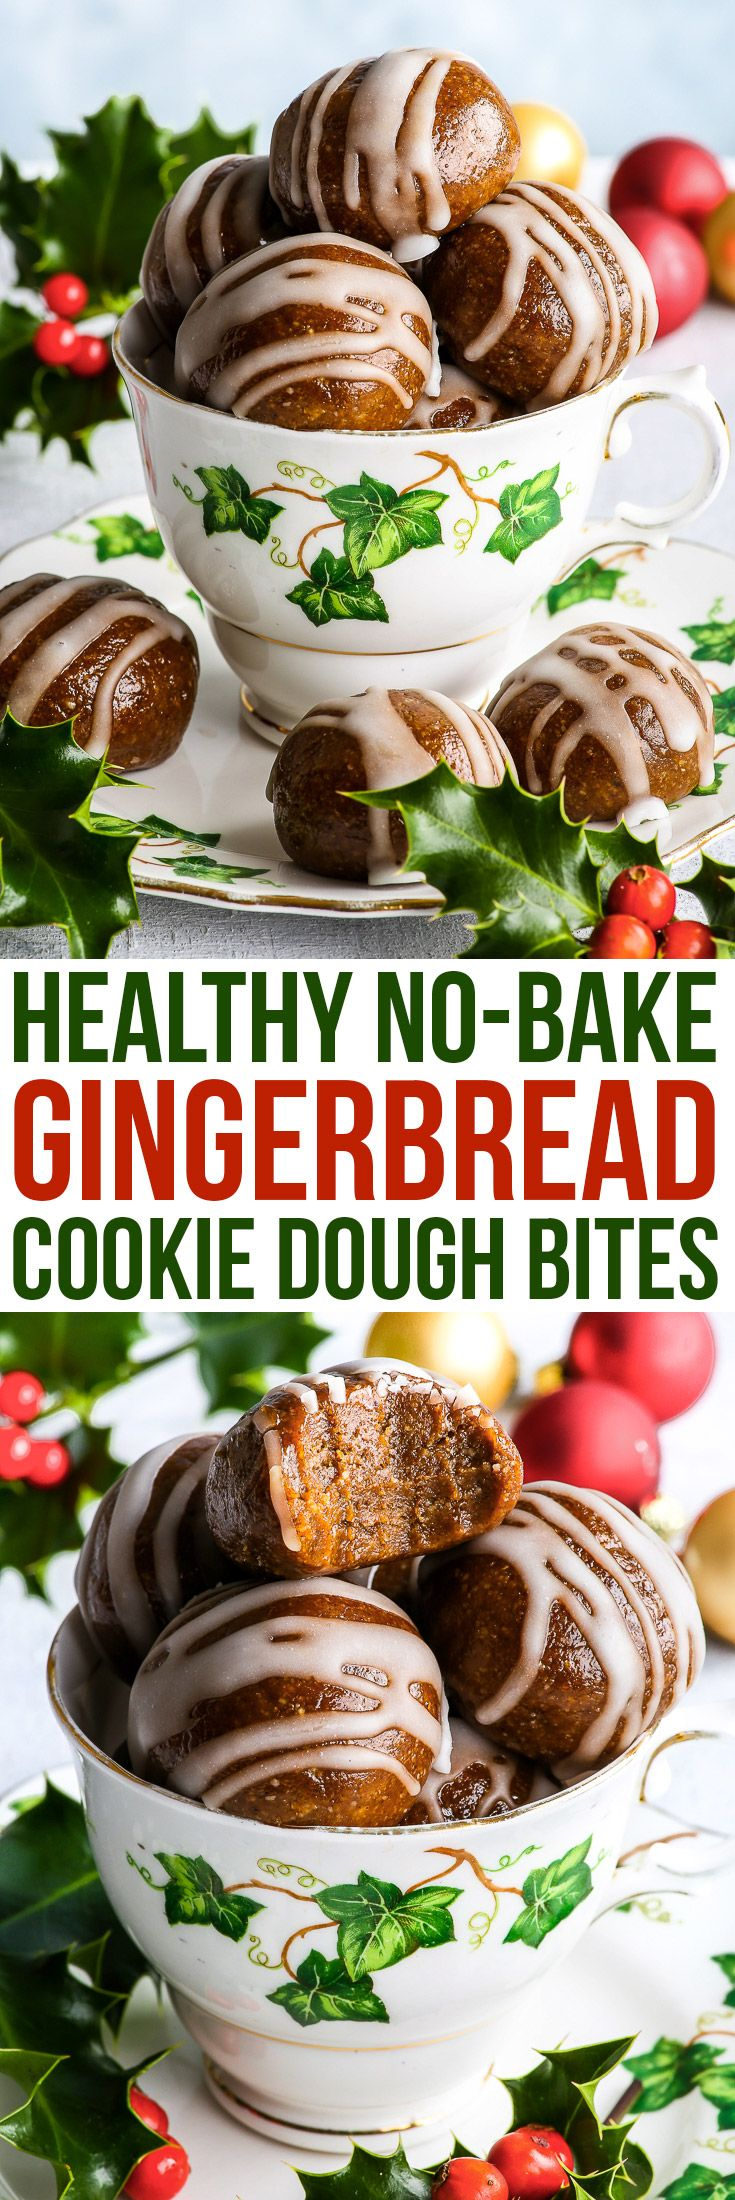 Healthy No-Bake Gingerbread Cookie Dough Bites - The Loopy Whisk